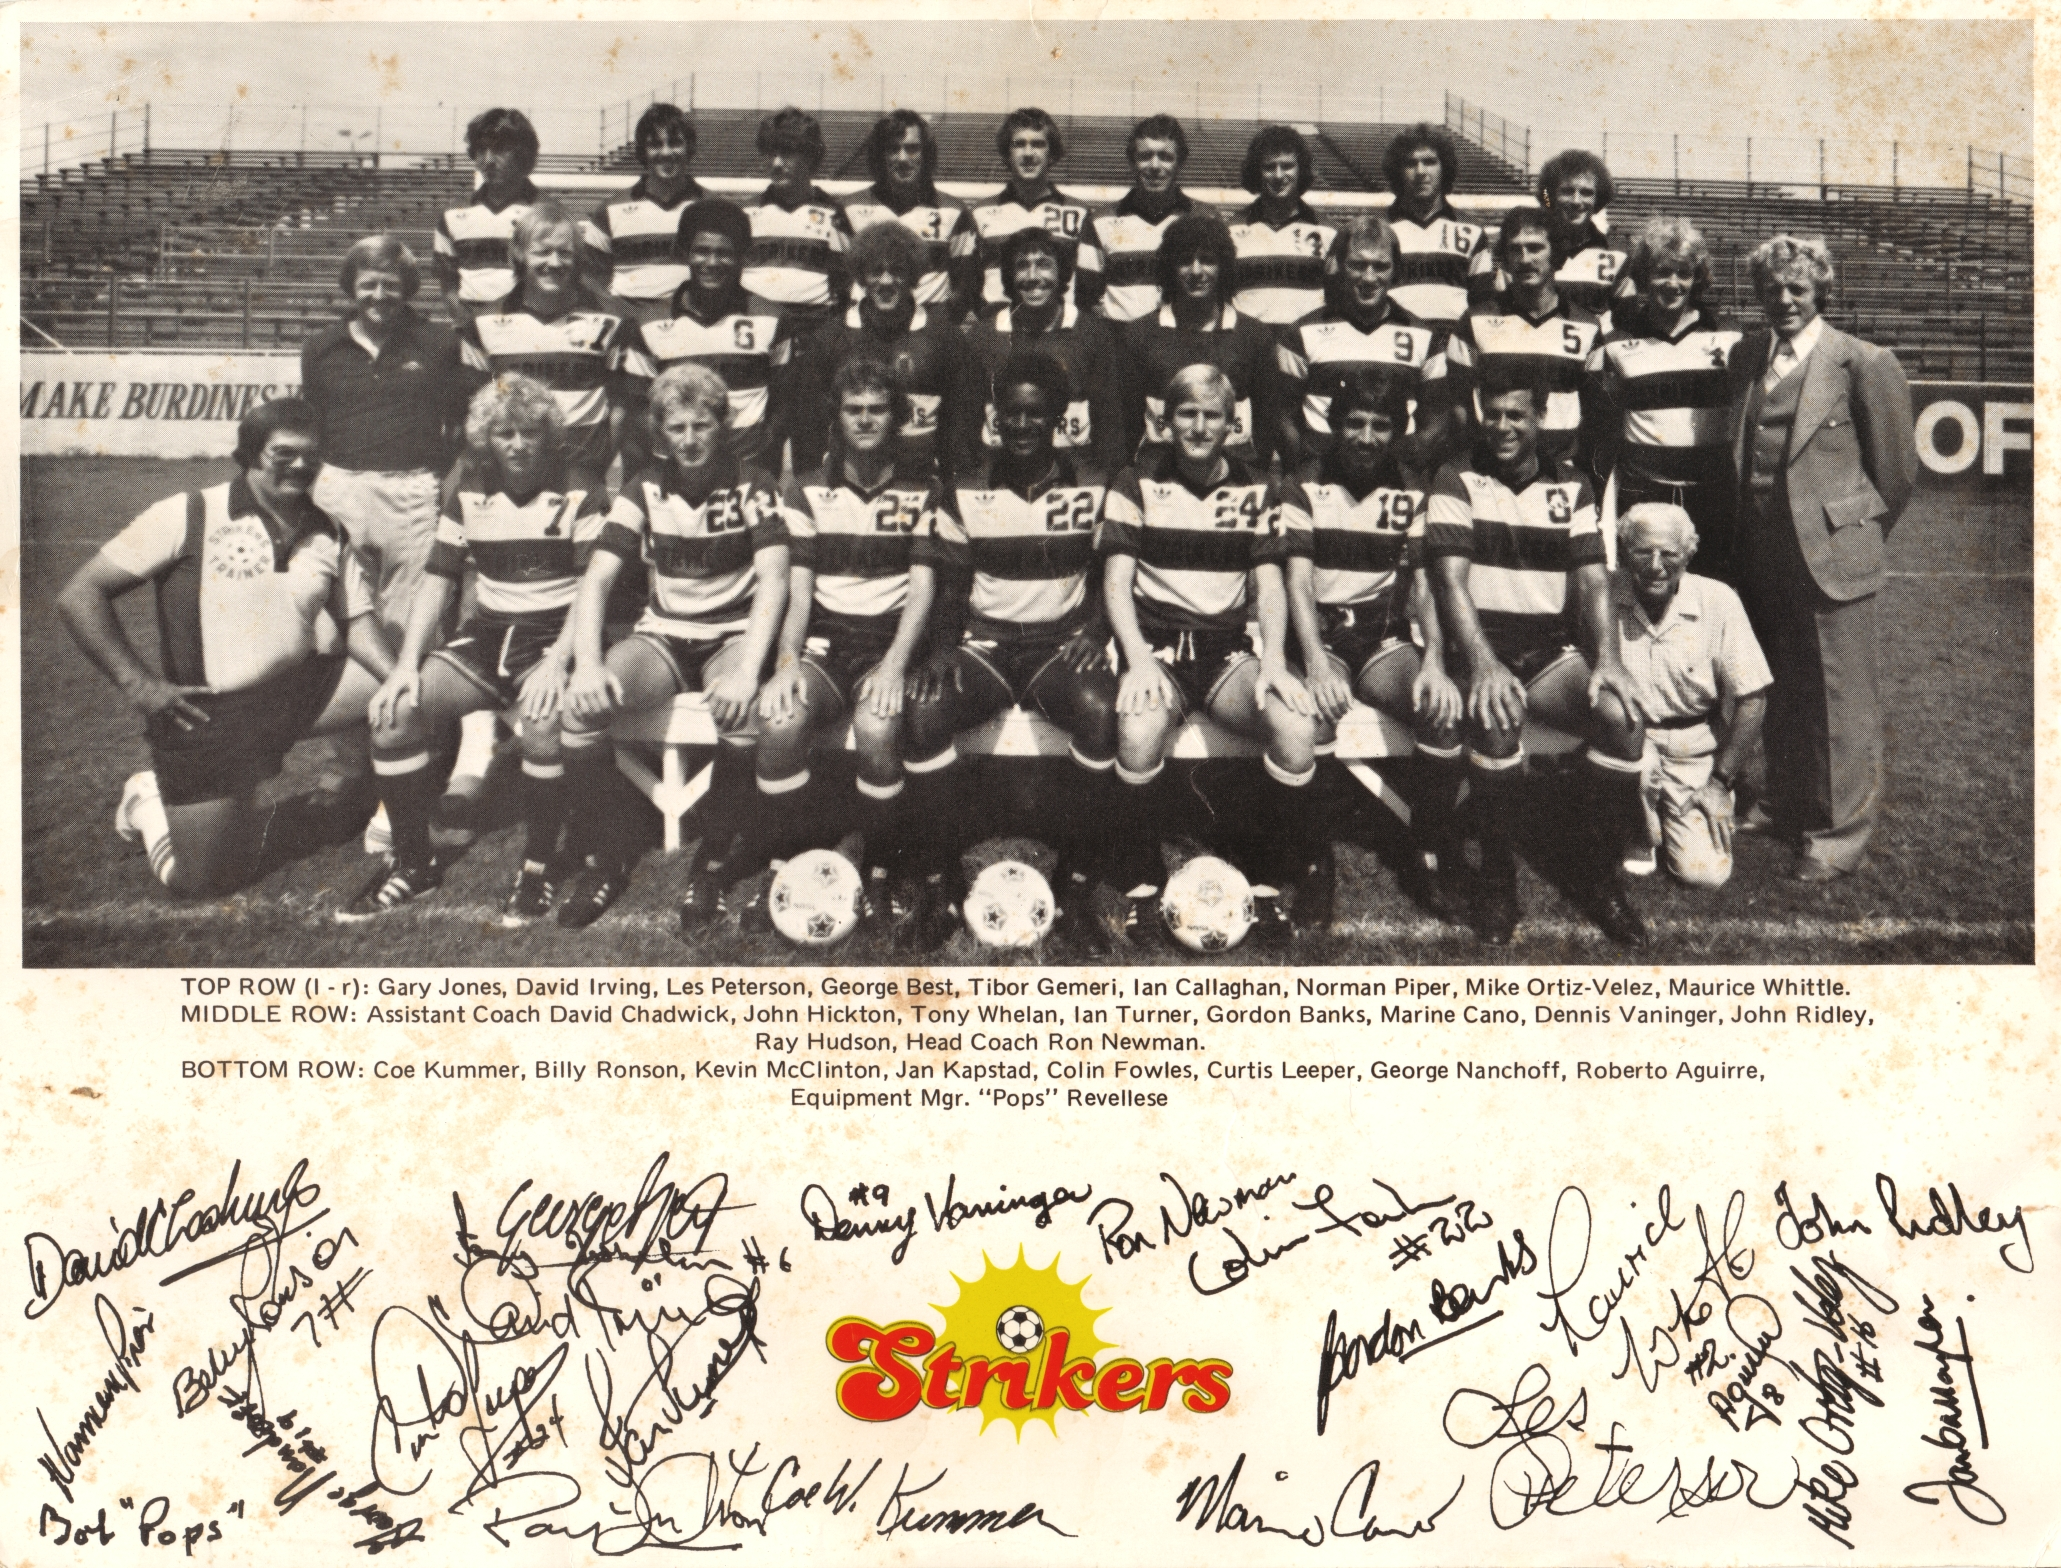 NASL Soccer Ft. Lauderdale Strikers 78 Road Team